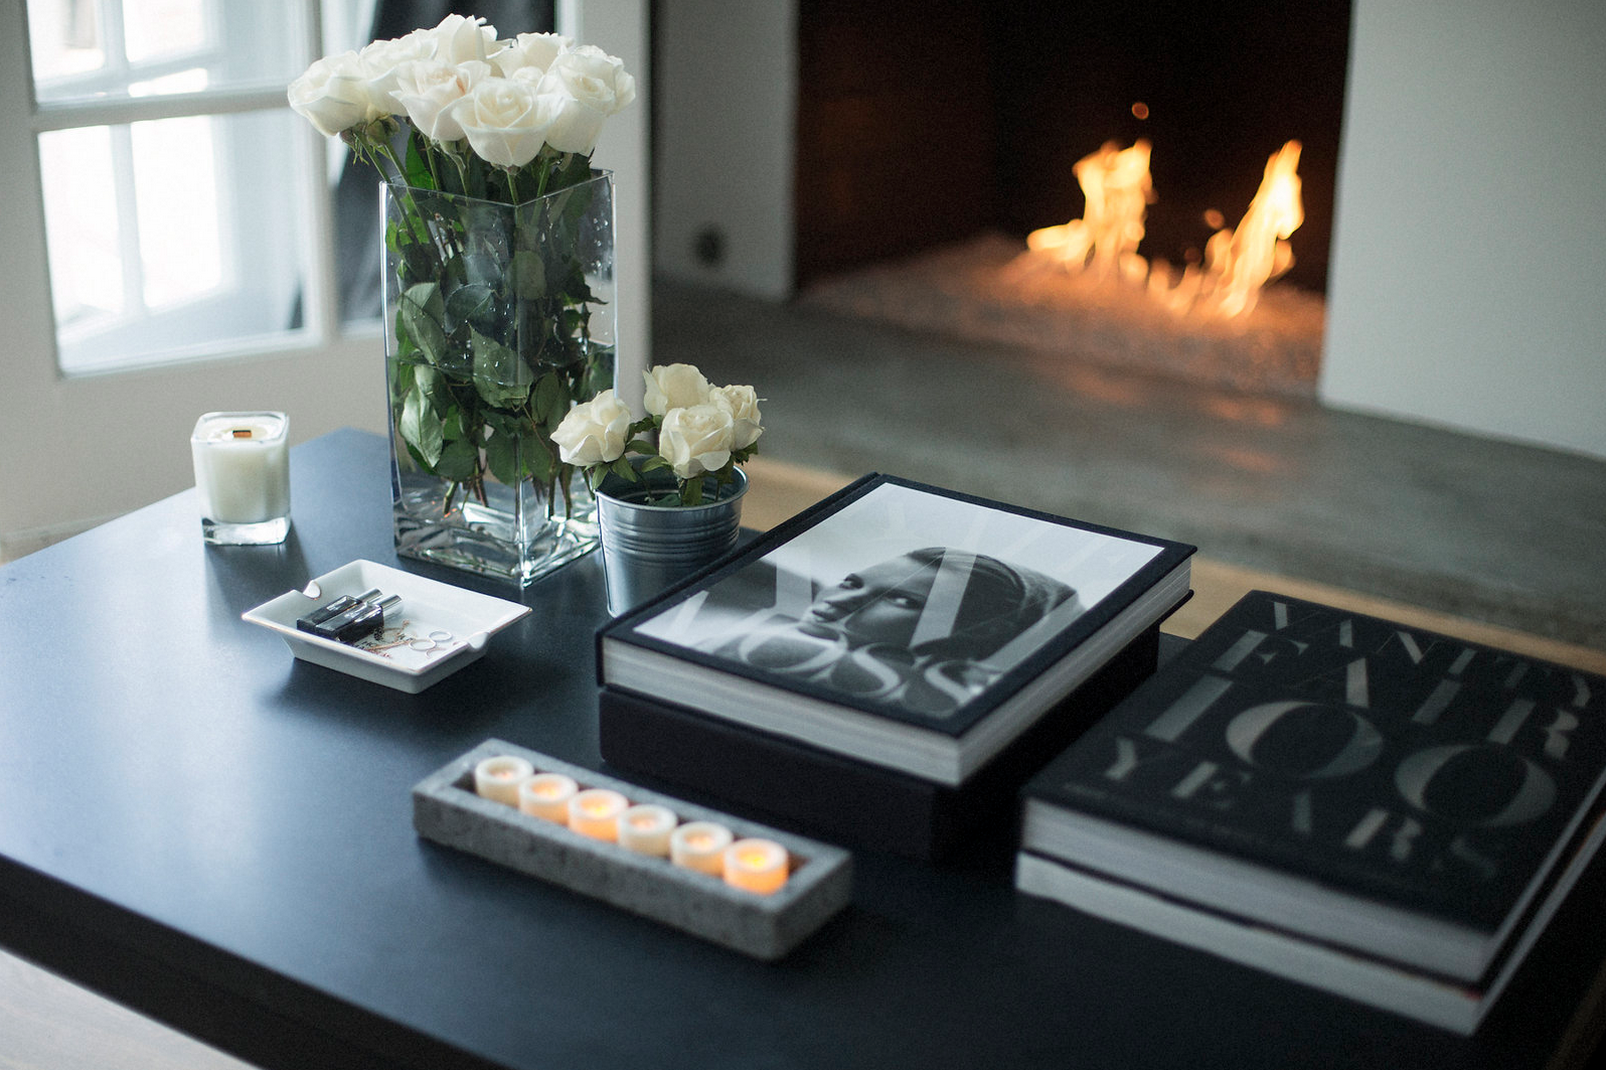 Our Favorite Fashion Coffee Table Books In The Air Magazine